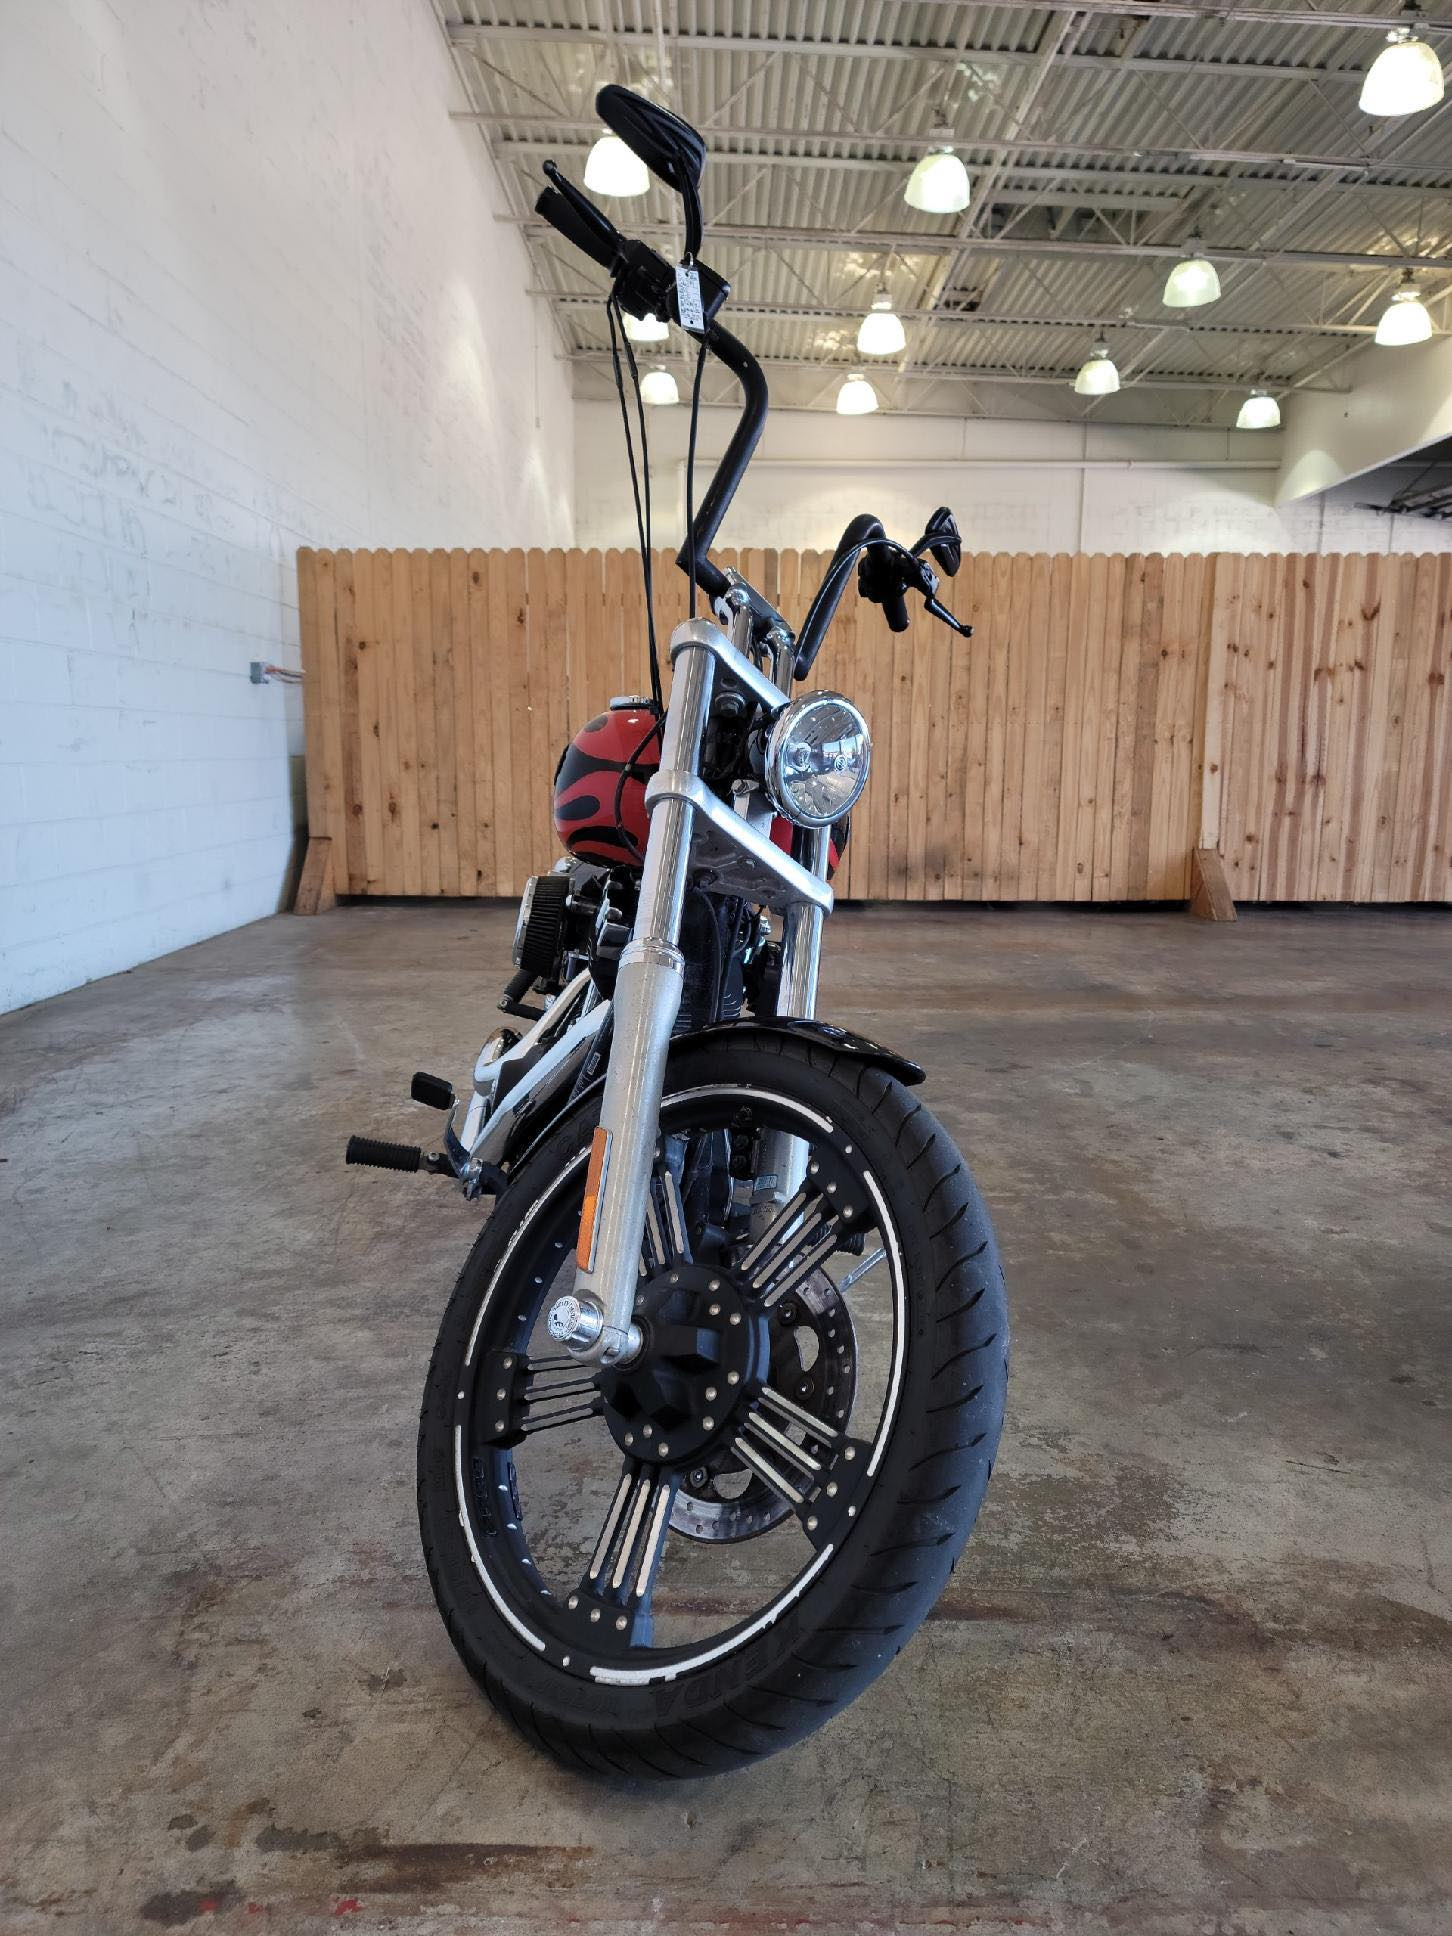 2011 Harley-Davidson Dyna Glide Wide Glide at Twisted Cycles